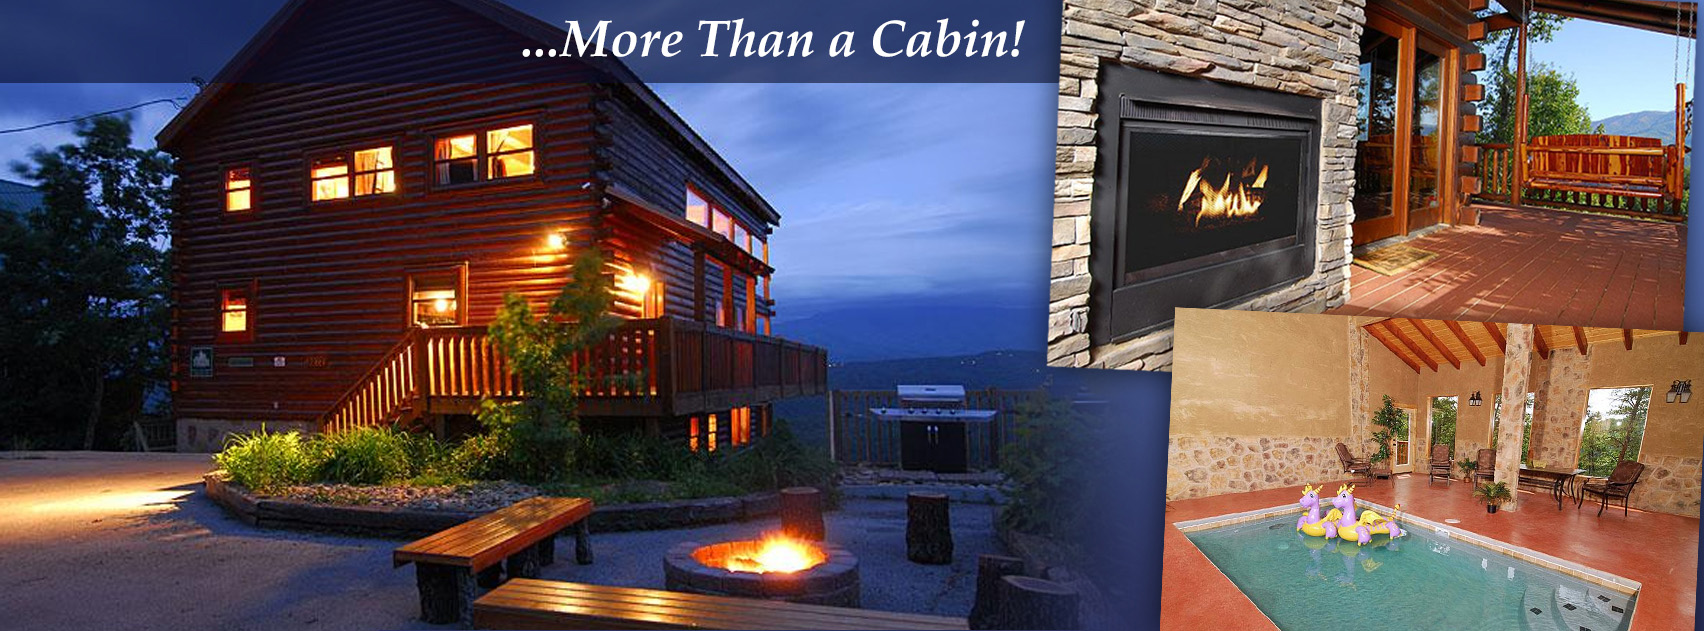 Timber Tops Luxury Log Cabins Vacation Rental Management Company.